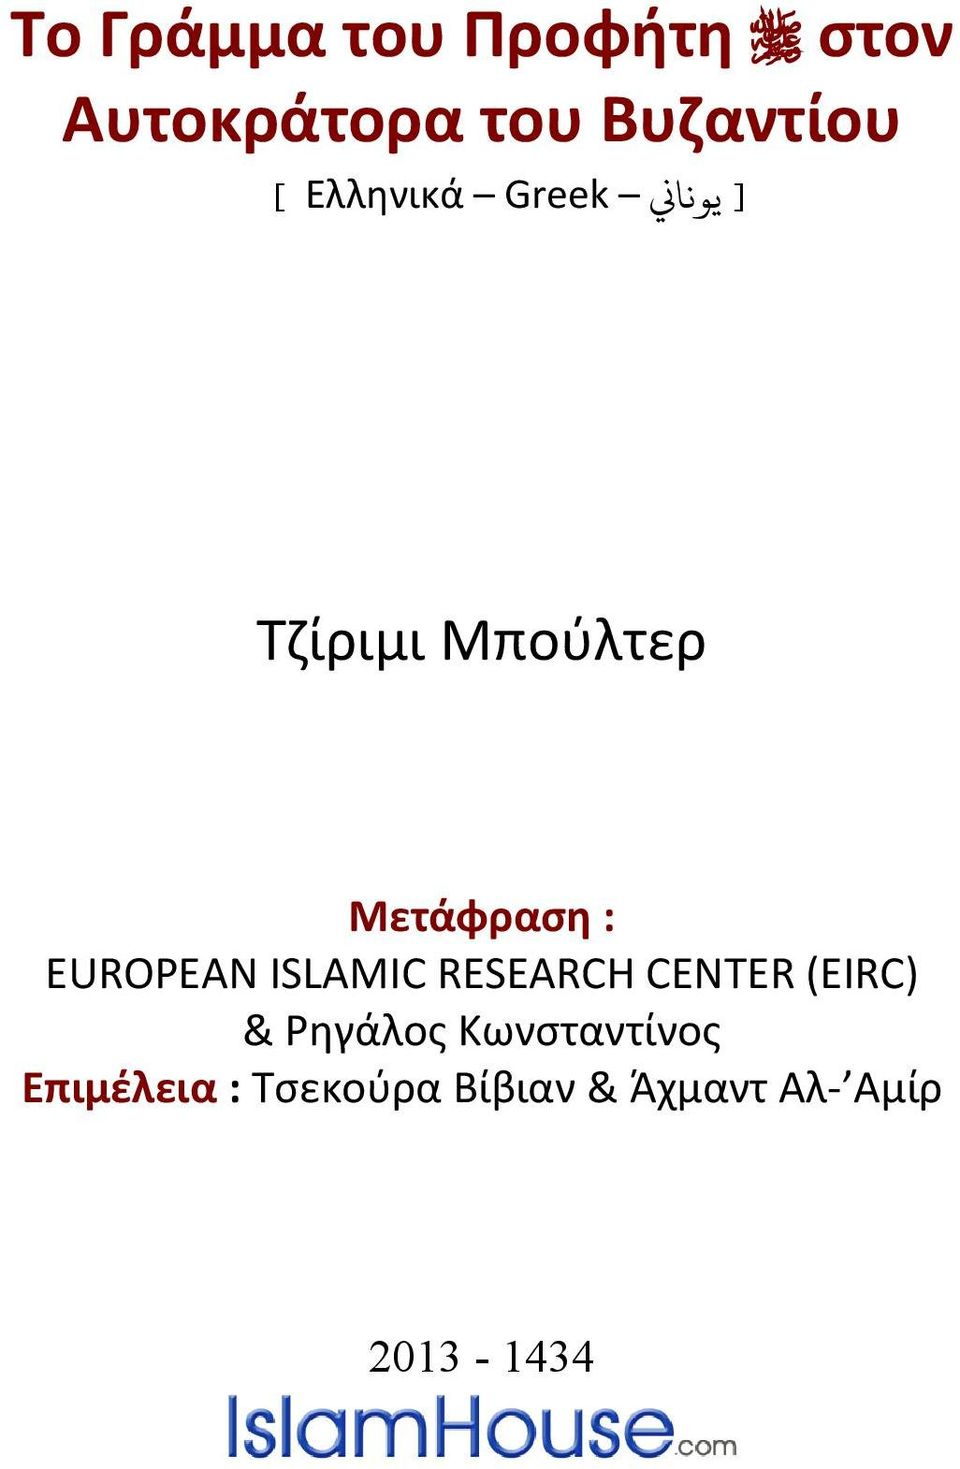 EUROPEAN ISLAMIC RESEARCH CENTER (EIRC) & Ρηγάλος